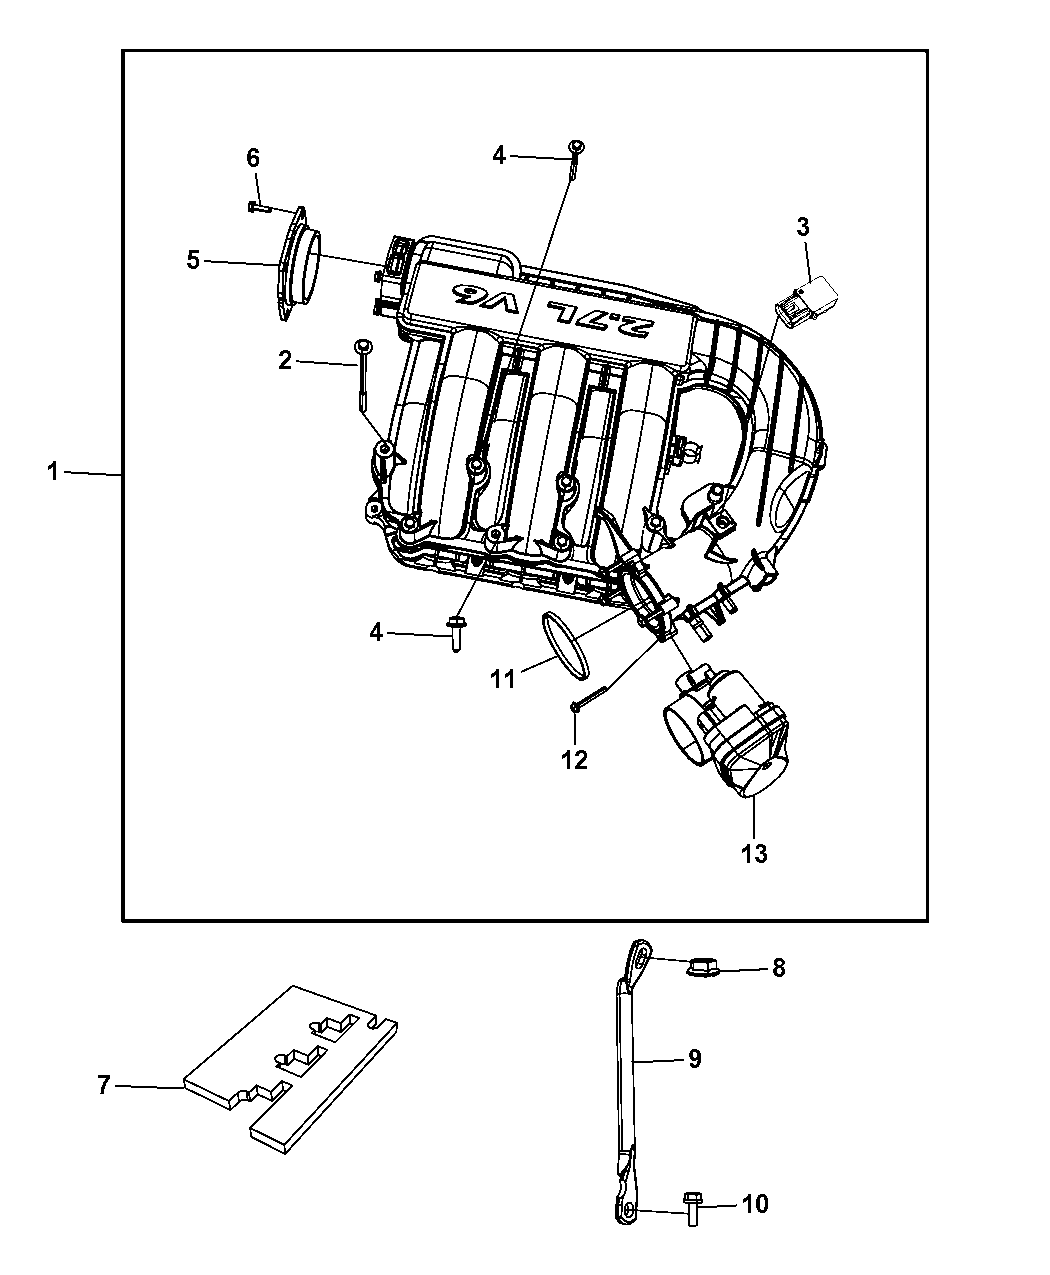 2008 Dodge Magnum Intake Manifold Mopar Parts Giant Engine Diagram Thumbnail 2